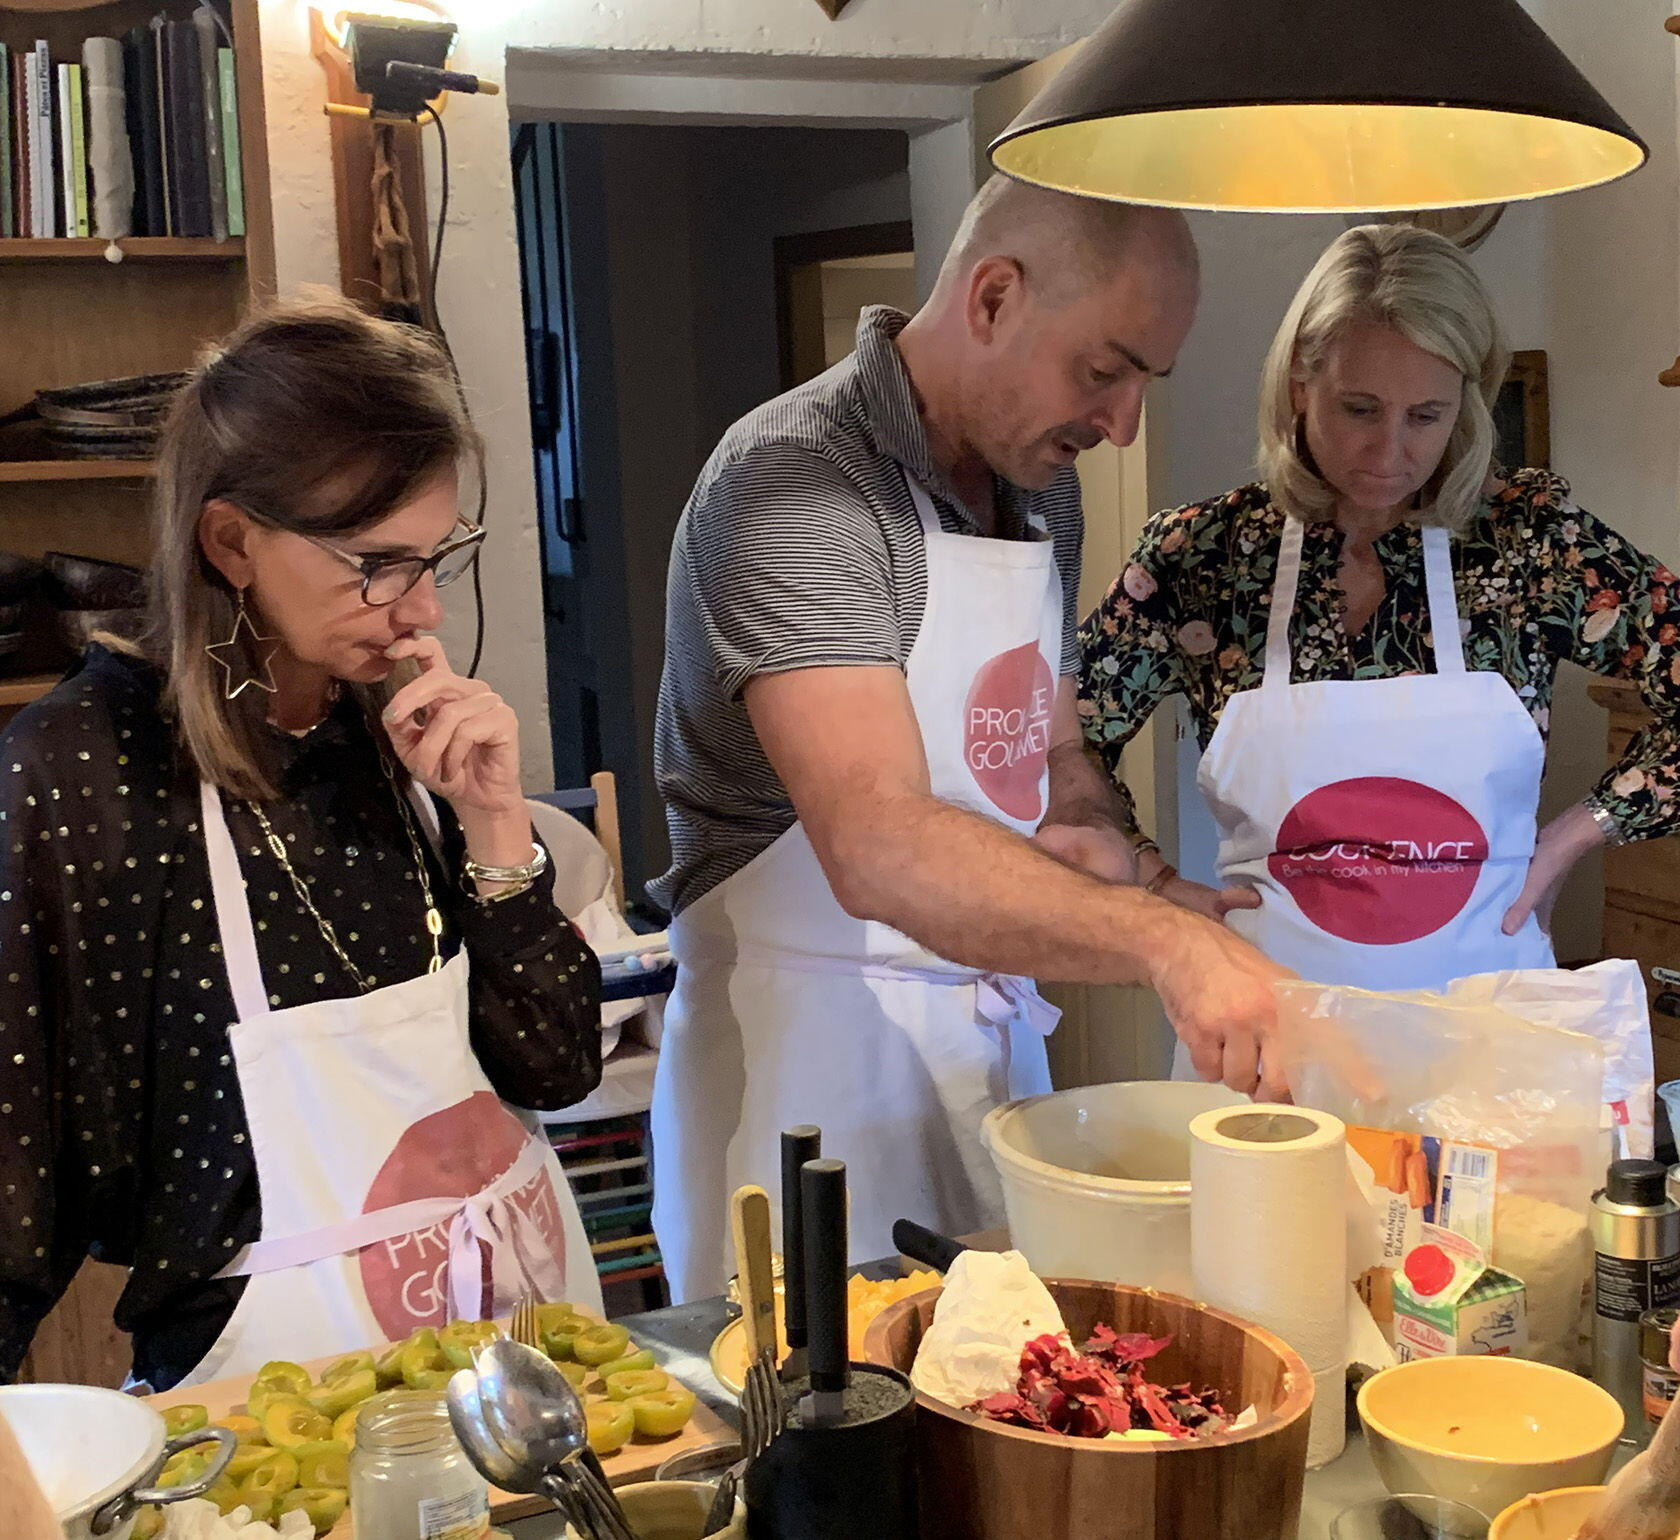 Provence Gourmet Gilles Conchy Cooking Class